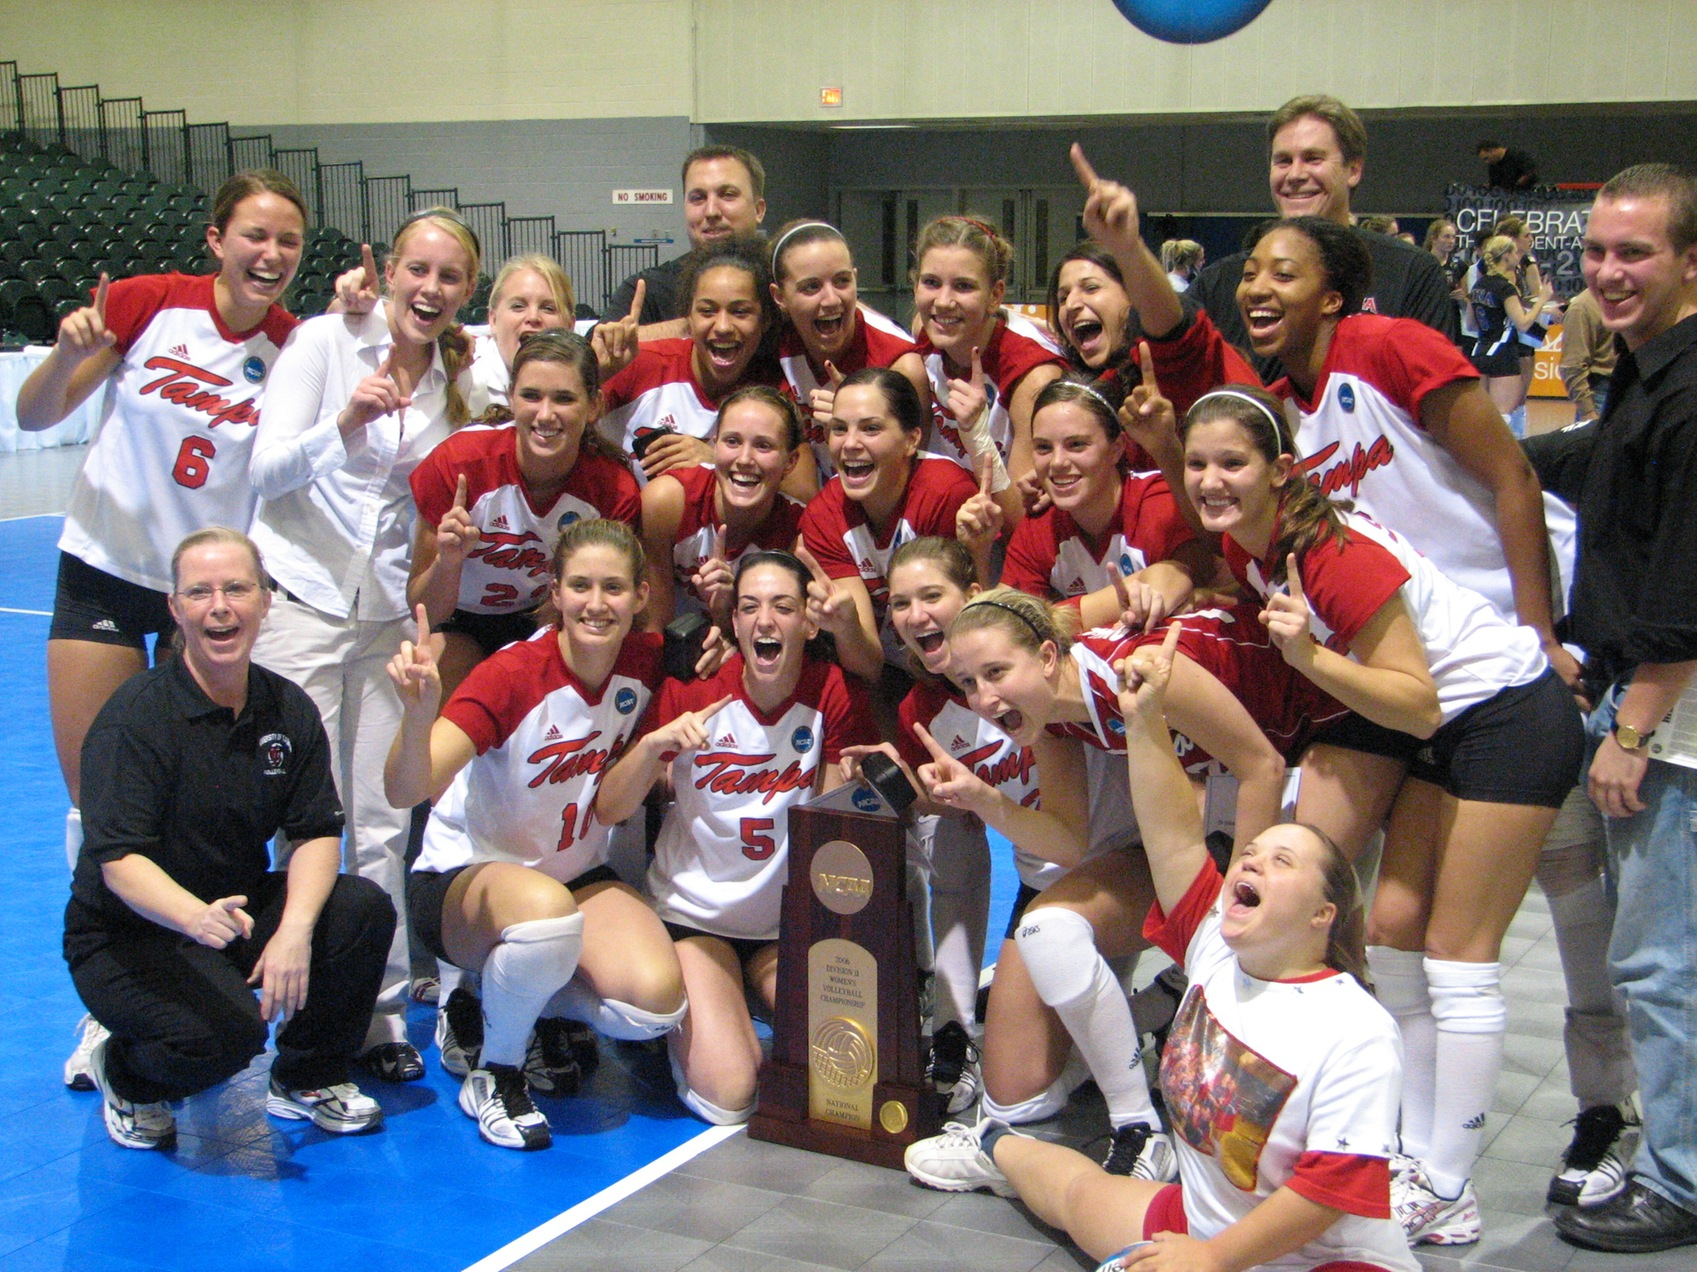 2006 National Champions